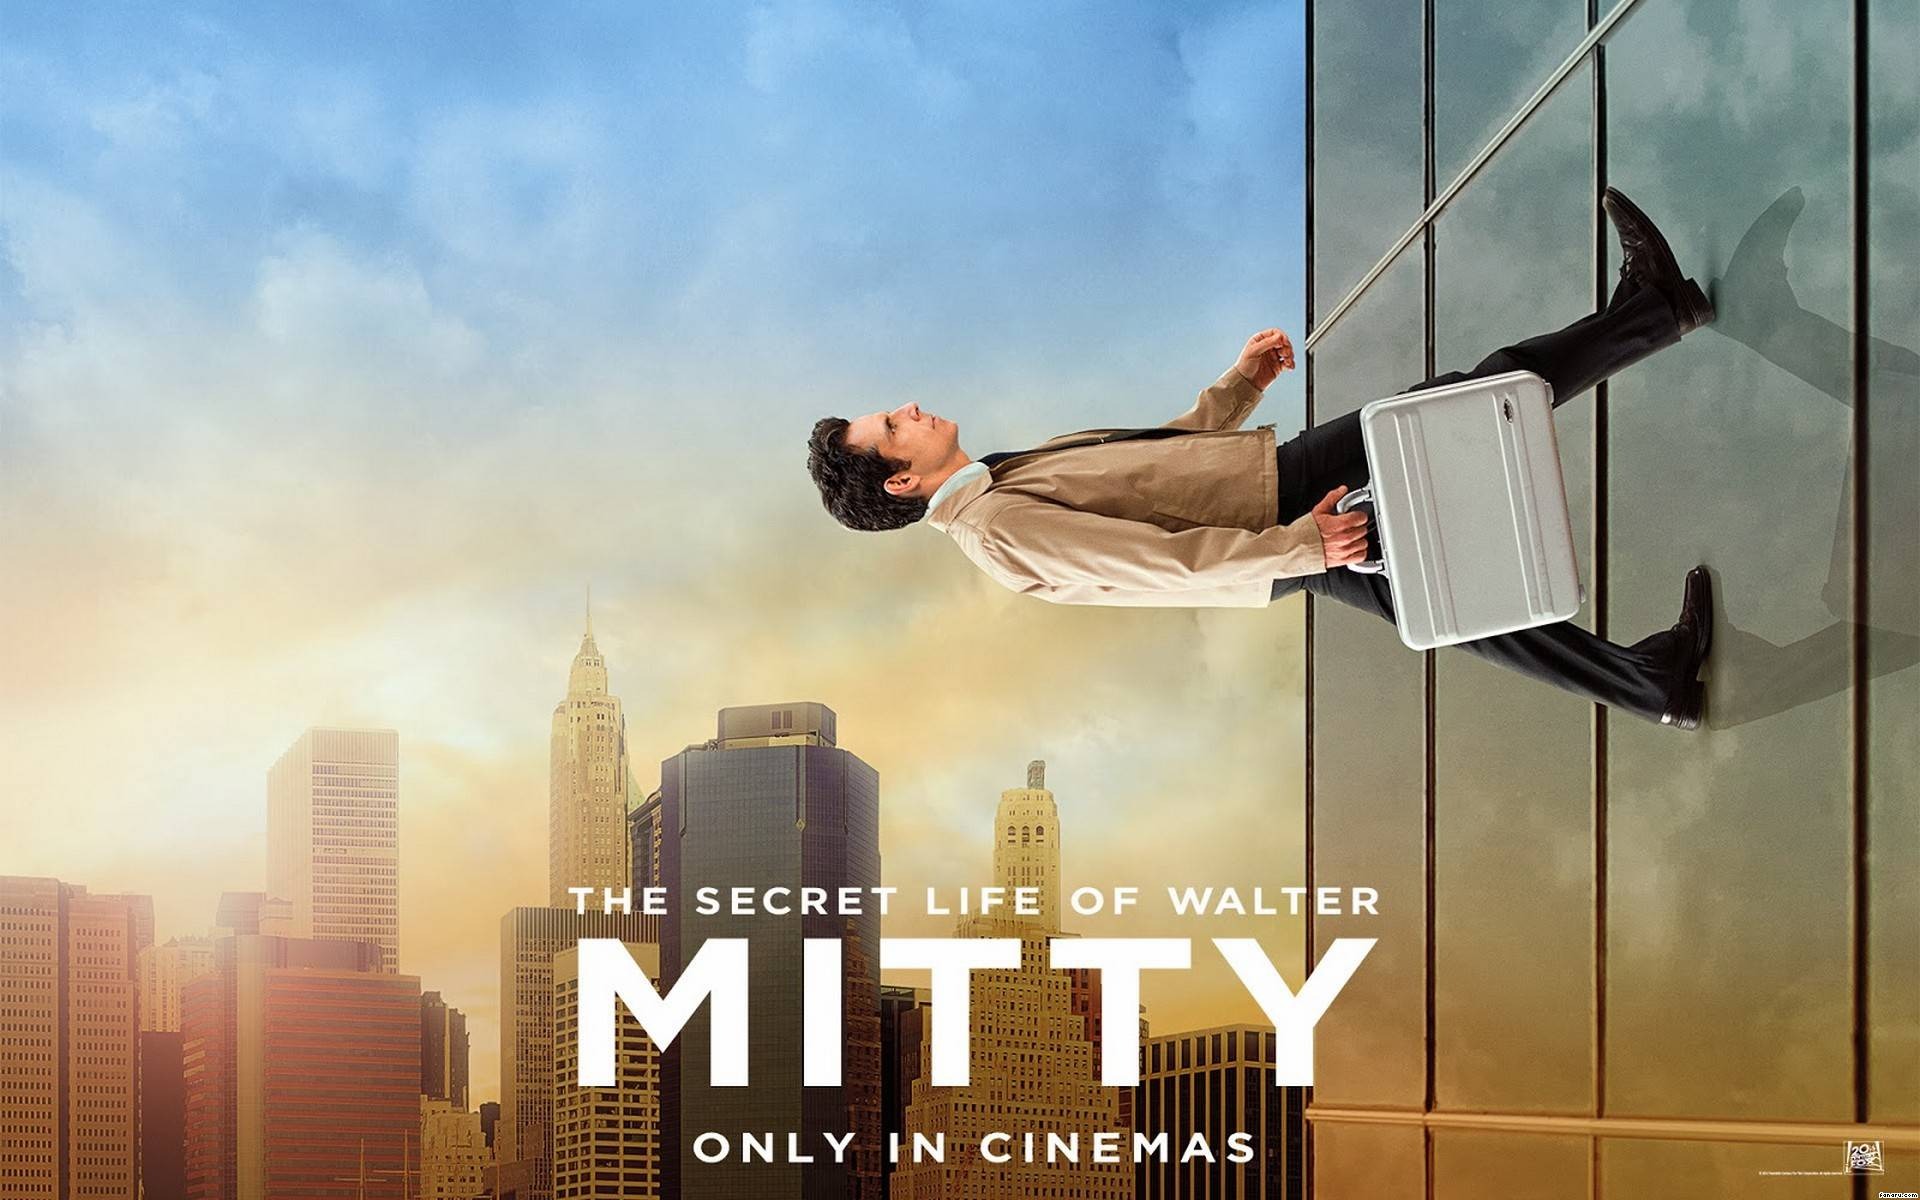 essay on the secret life of walter mitty Essay on the secret life of walter mitty with his wife the majority of the story took place in the mind of walter mitty each scene was a different imaginary reality.